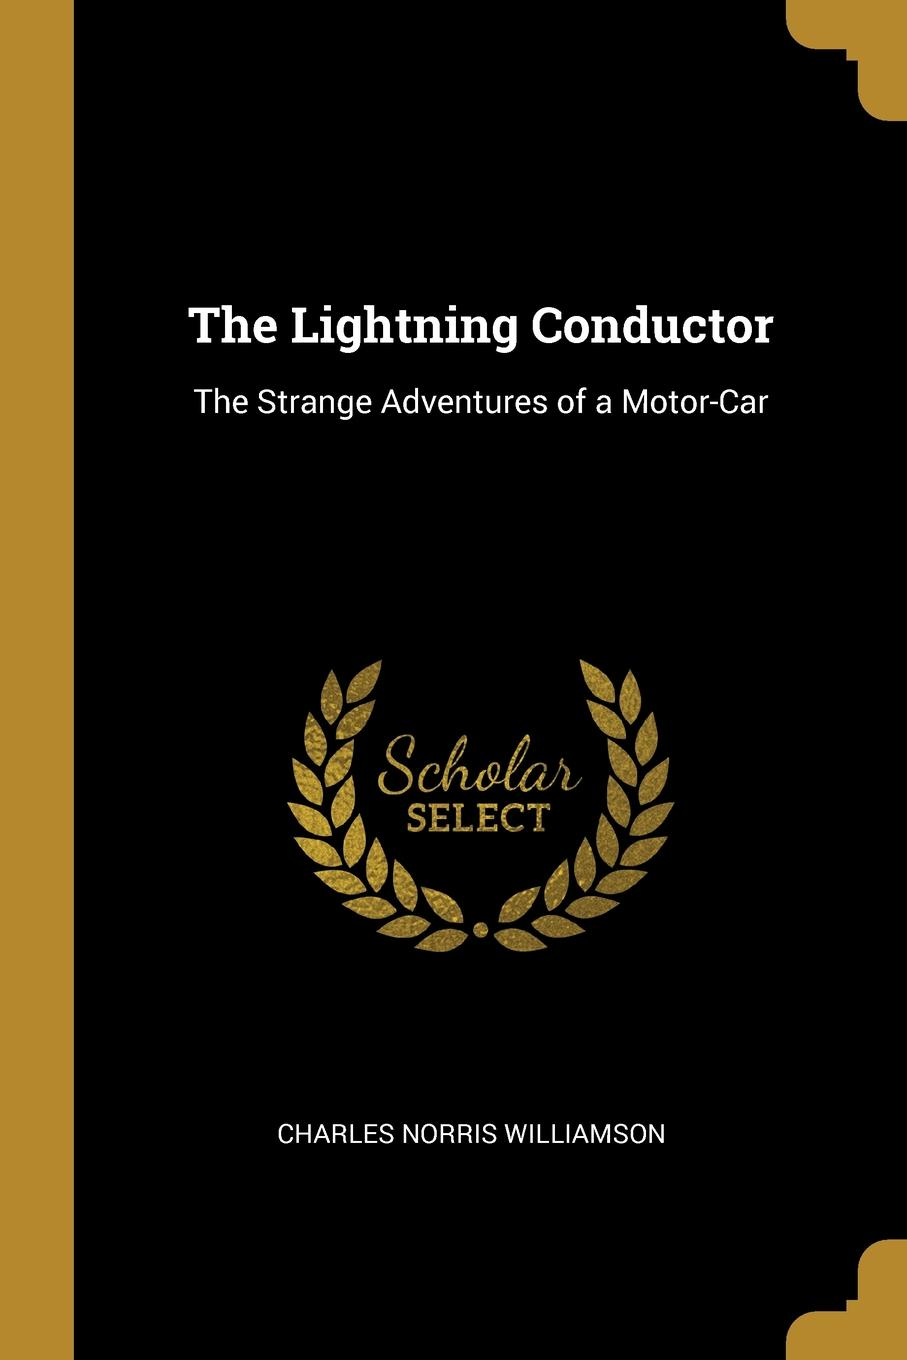 Charles Norris Williamson The Lightning Conductor. The Strange Adventures of a Motor-Car